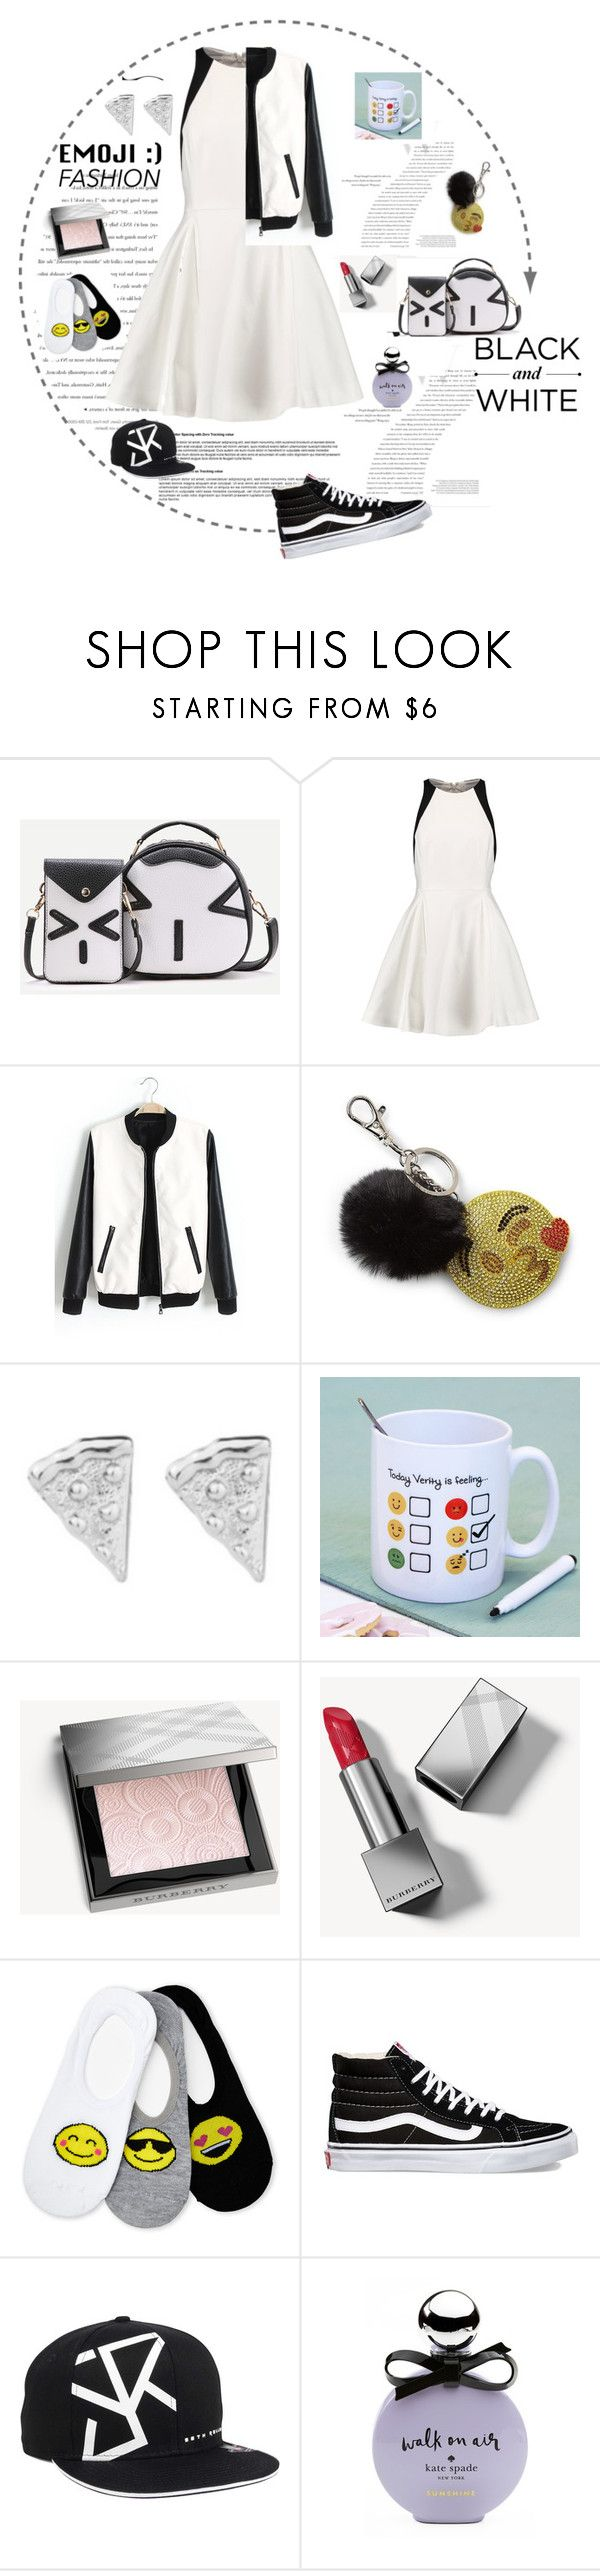 """Black and white Emoji"" by archsan ❤ liked on Polyvore featuring Balenciaga, WithChic, Halston Heritage, Bari Lynn, Rock 'N Rose, Burberry, Capelli New York, Vans, WWE and Kate Spade"